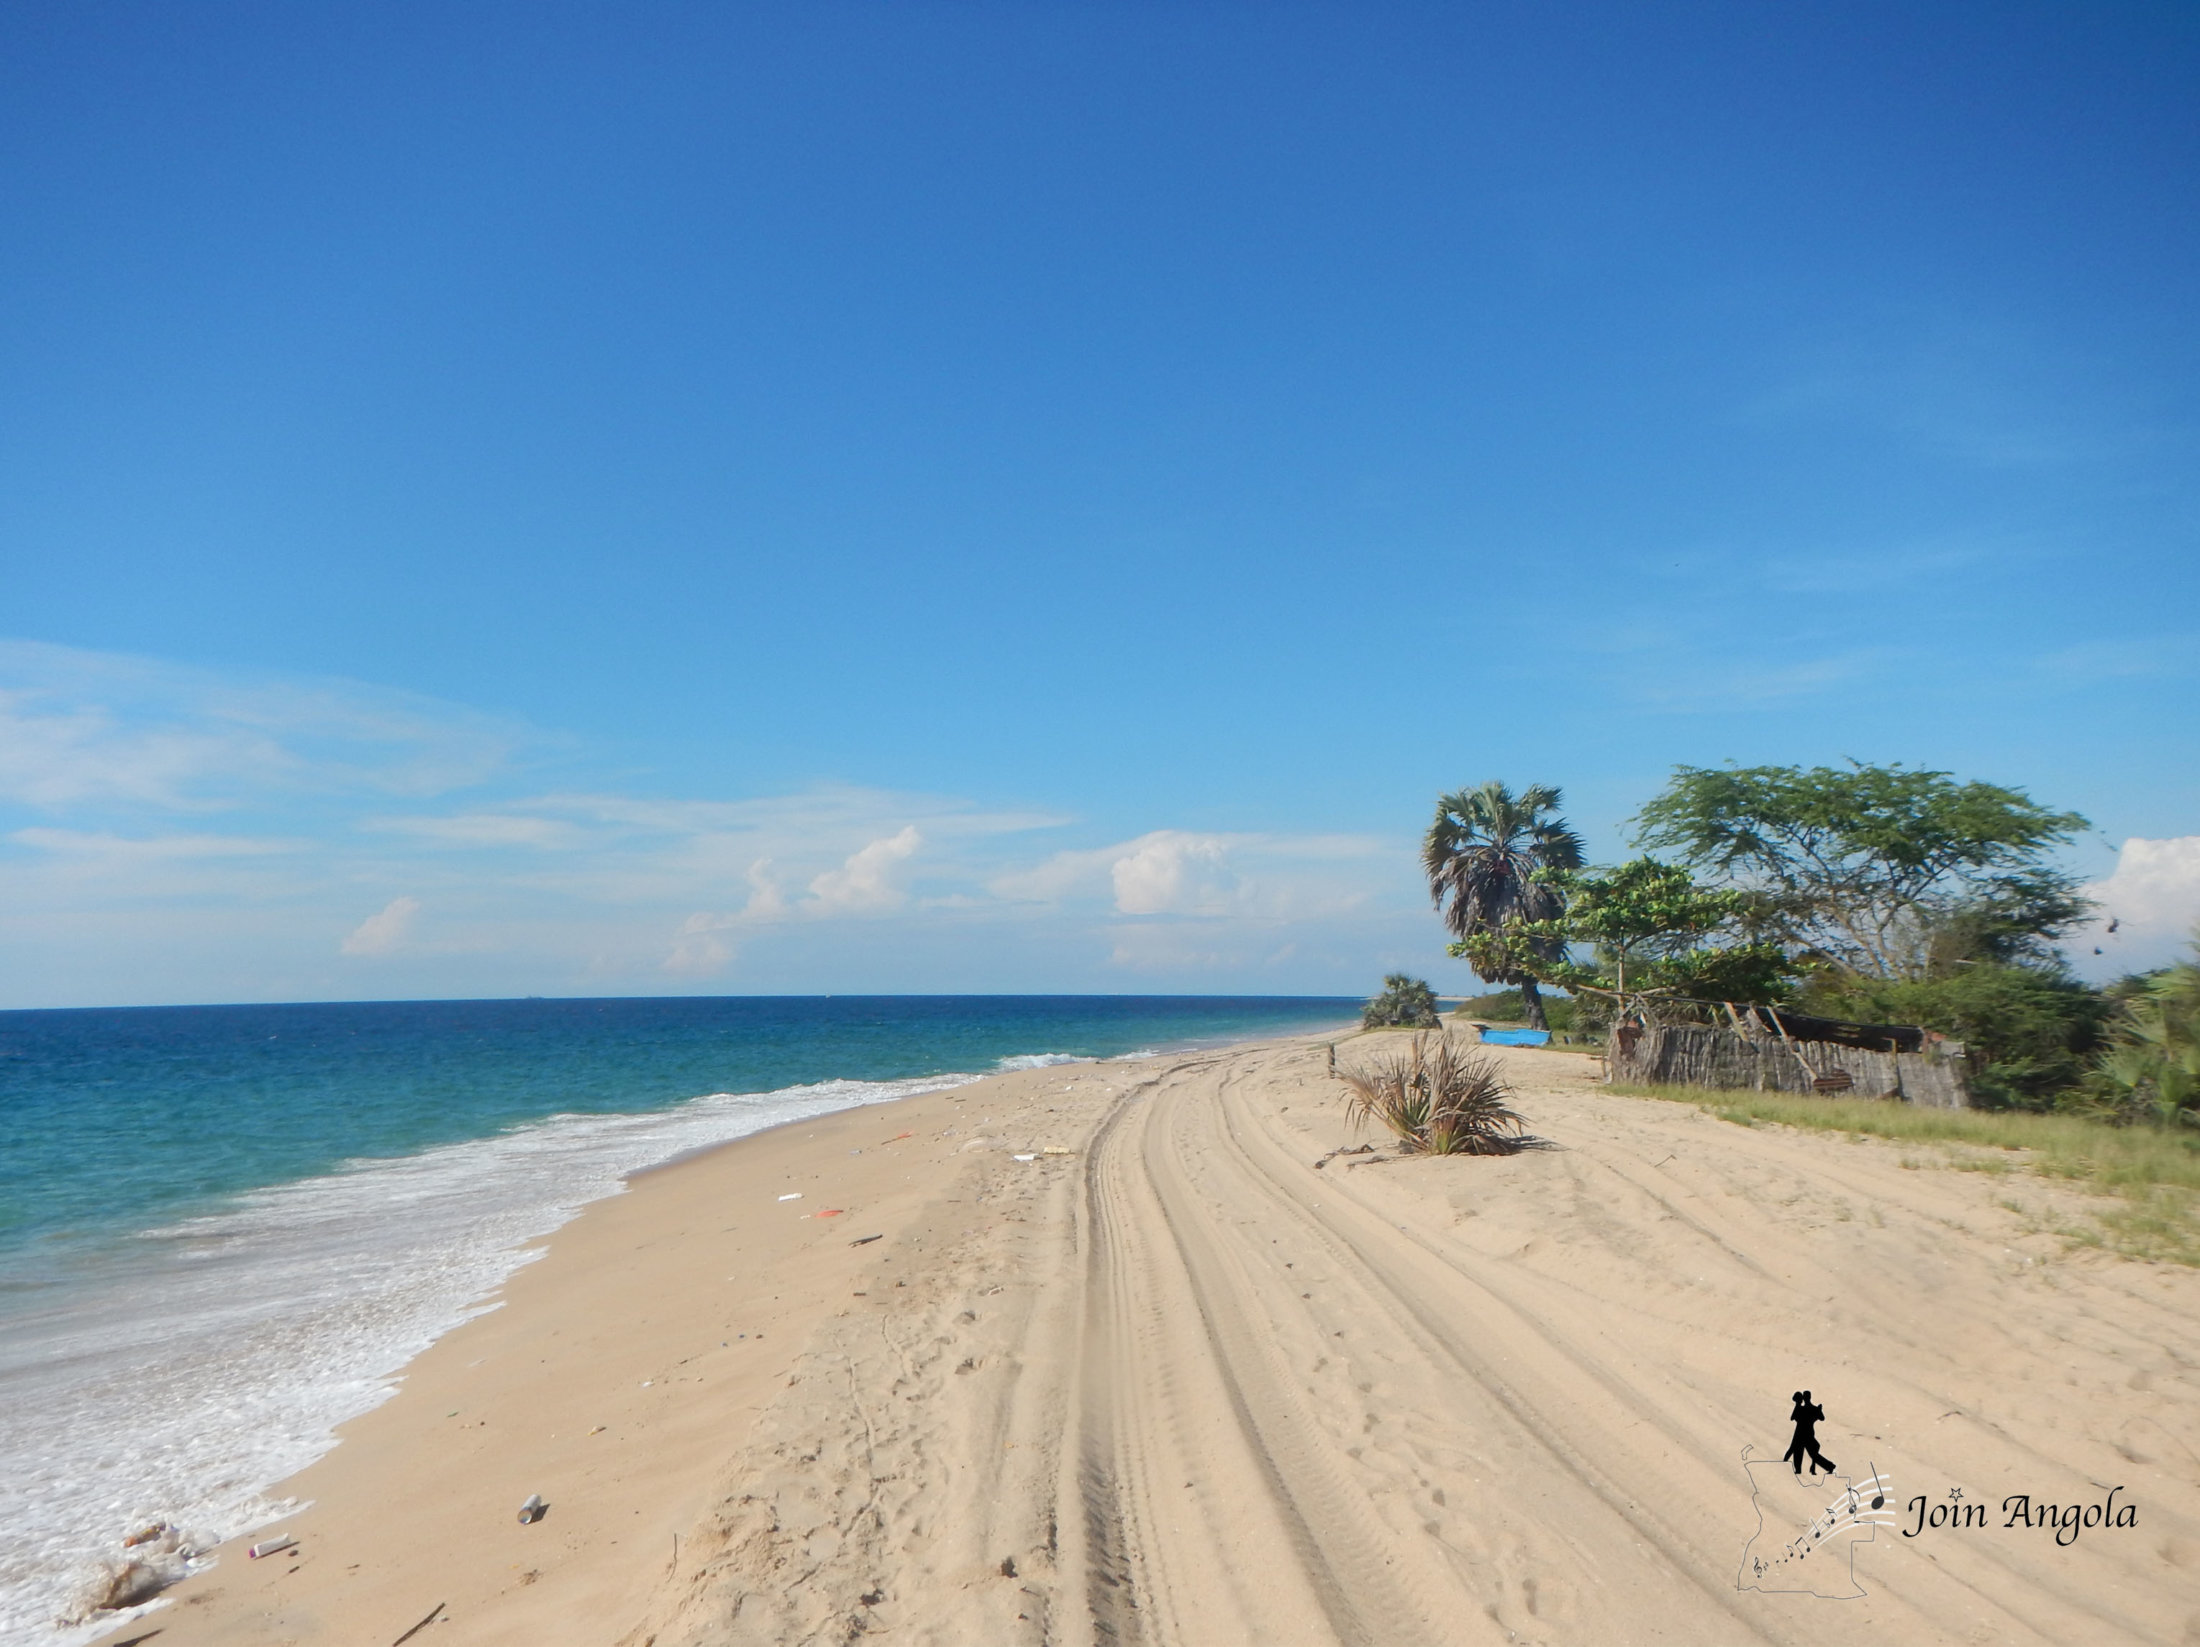 Ilha do Mussulo, where many people from Luanda go to relax on weekends.